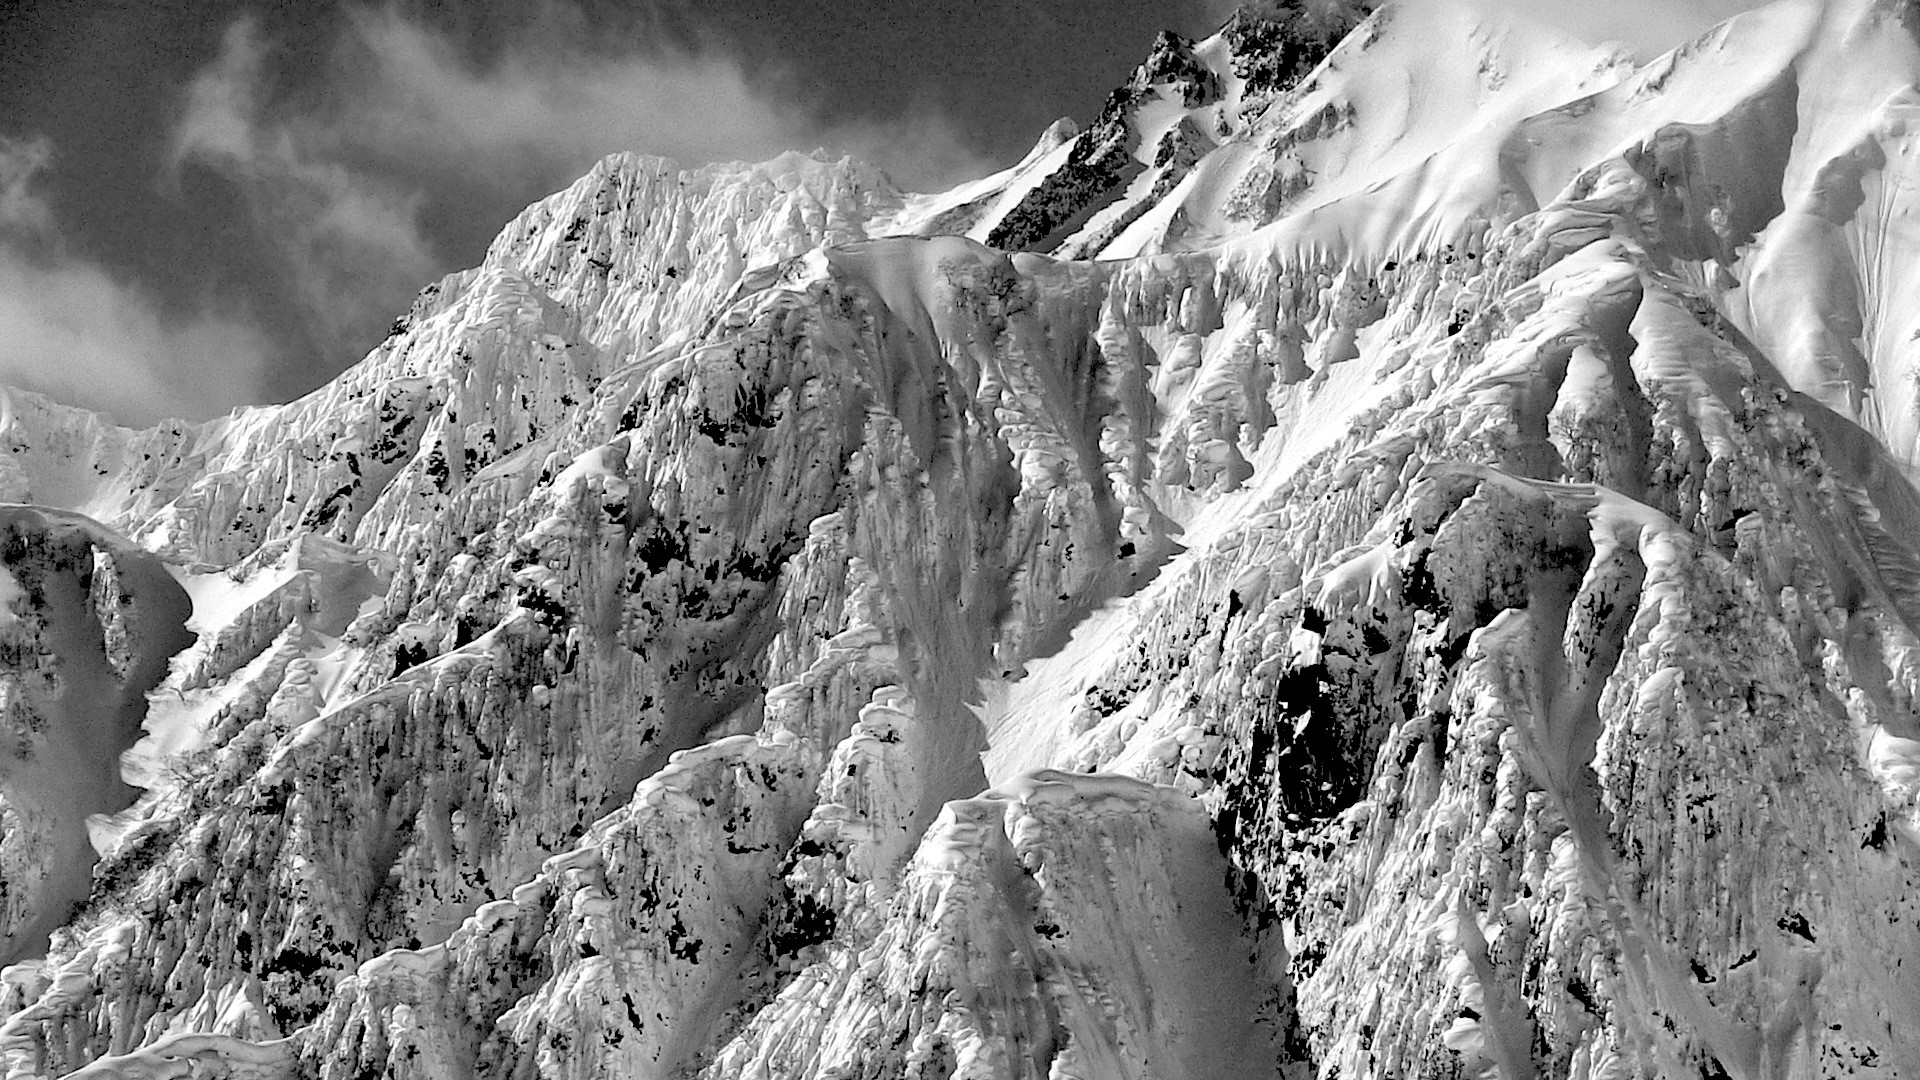 The mountains of Hakuba, Japan are for real. photo: miles clark/snowbrains